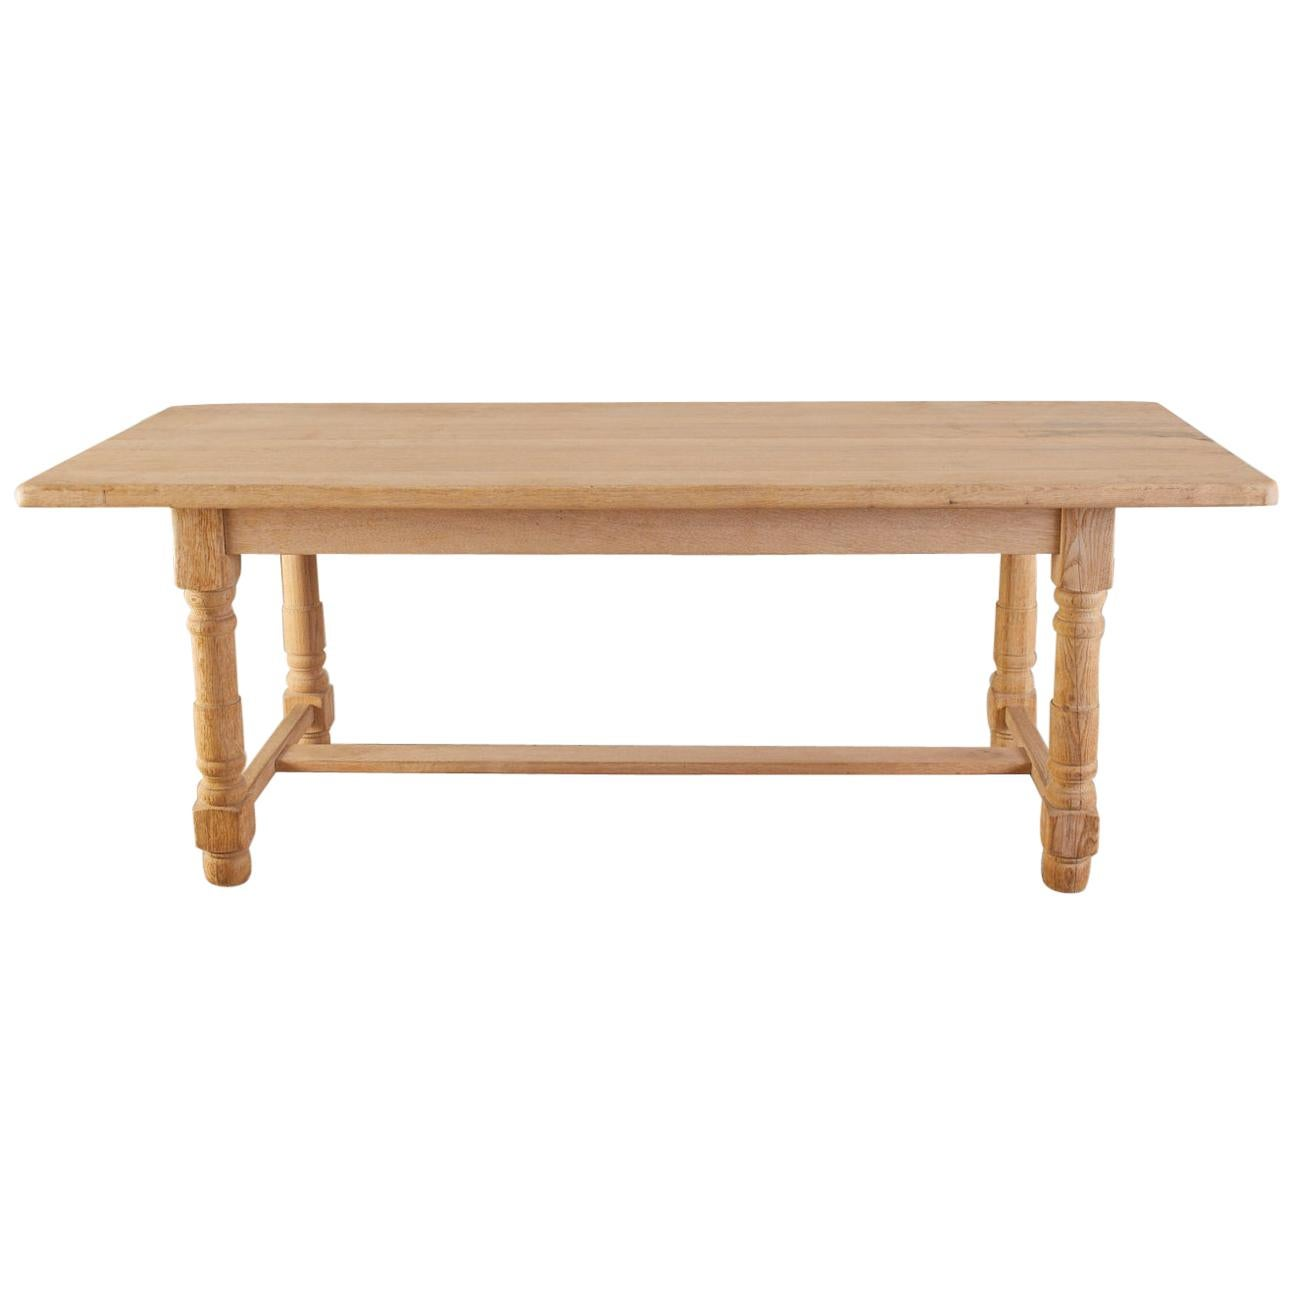 Country French Oak Farmhouse Trestle Dining Table